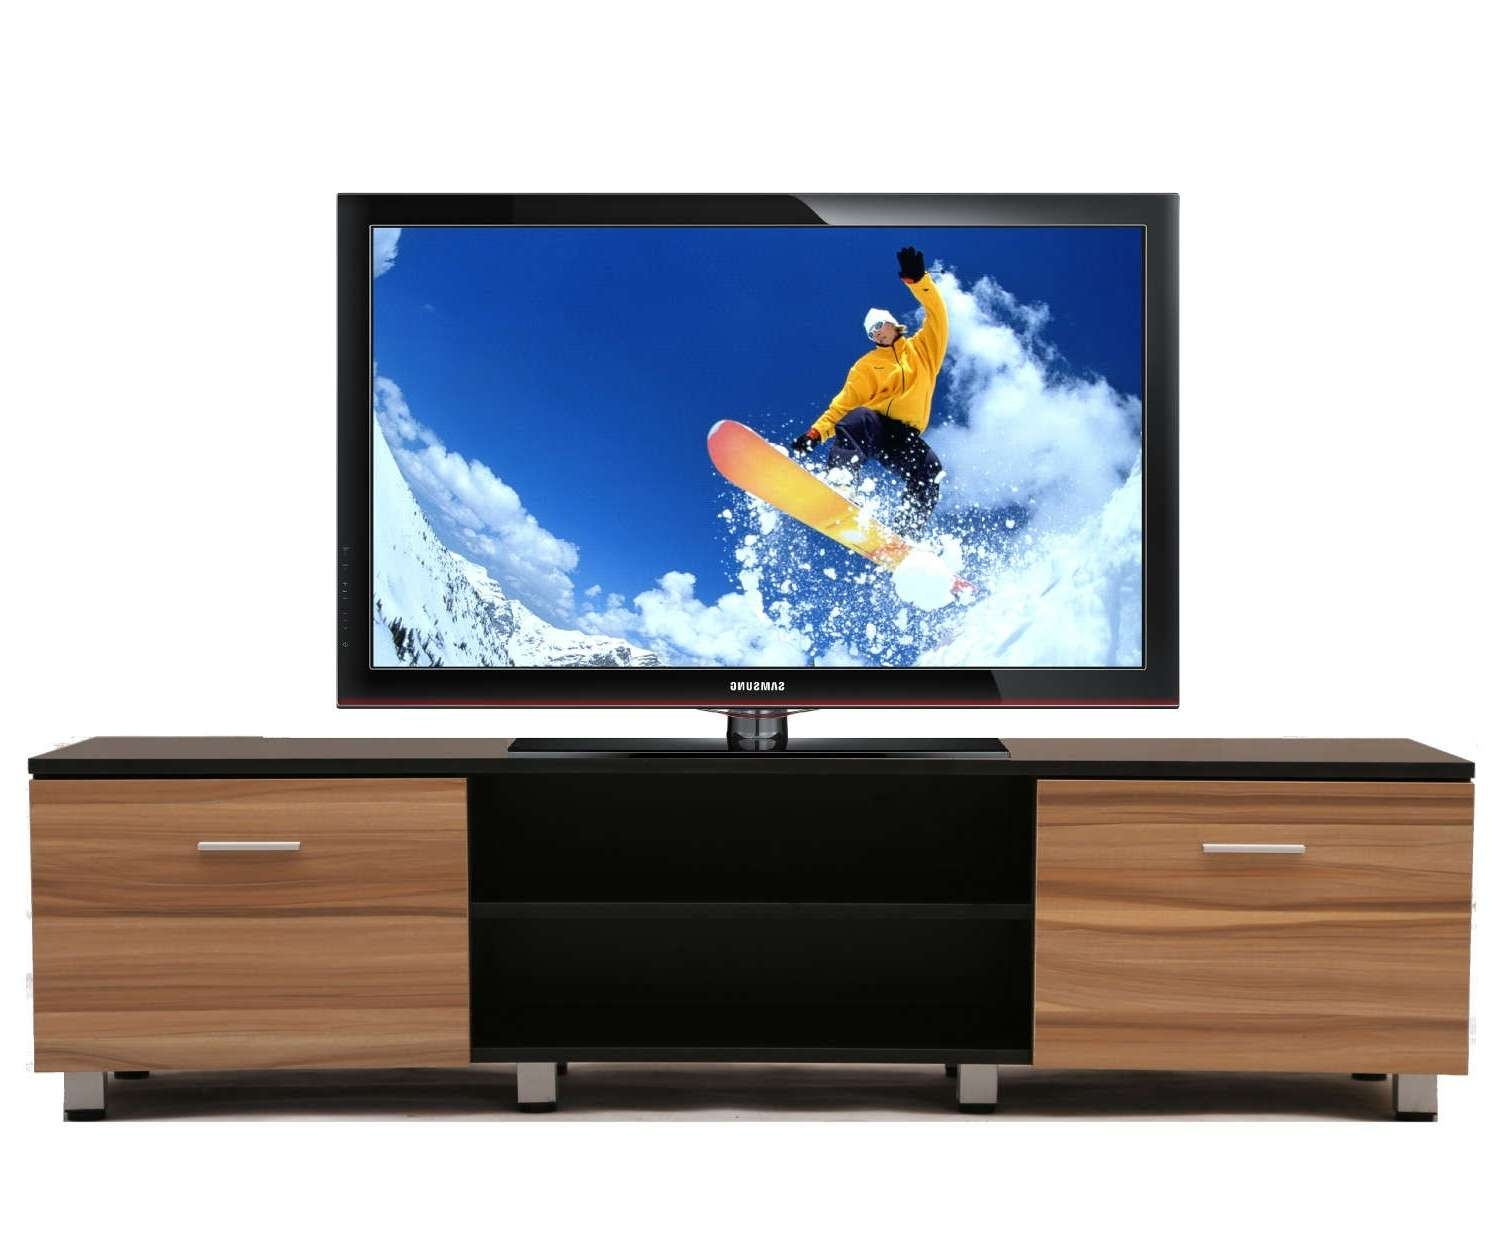 Wooden Samba Tv Unit Stand Cabinet | Furniturebox Inside Wooden Tv Cabinets (View 20 of 20)